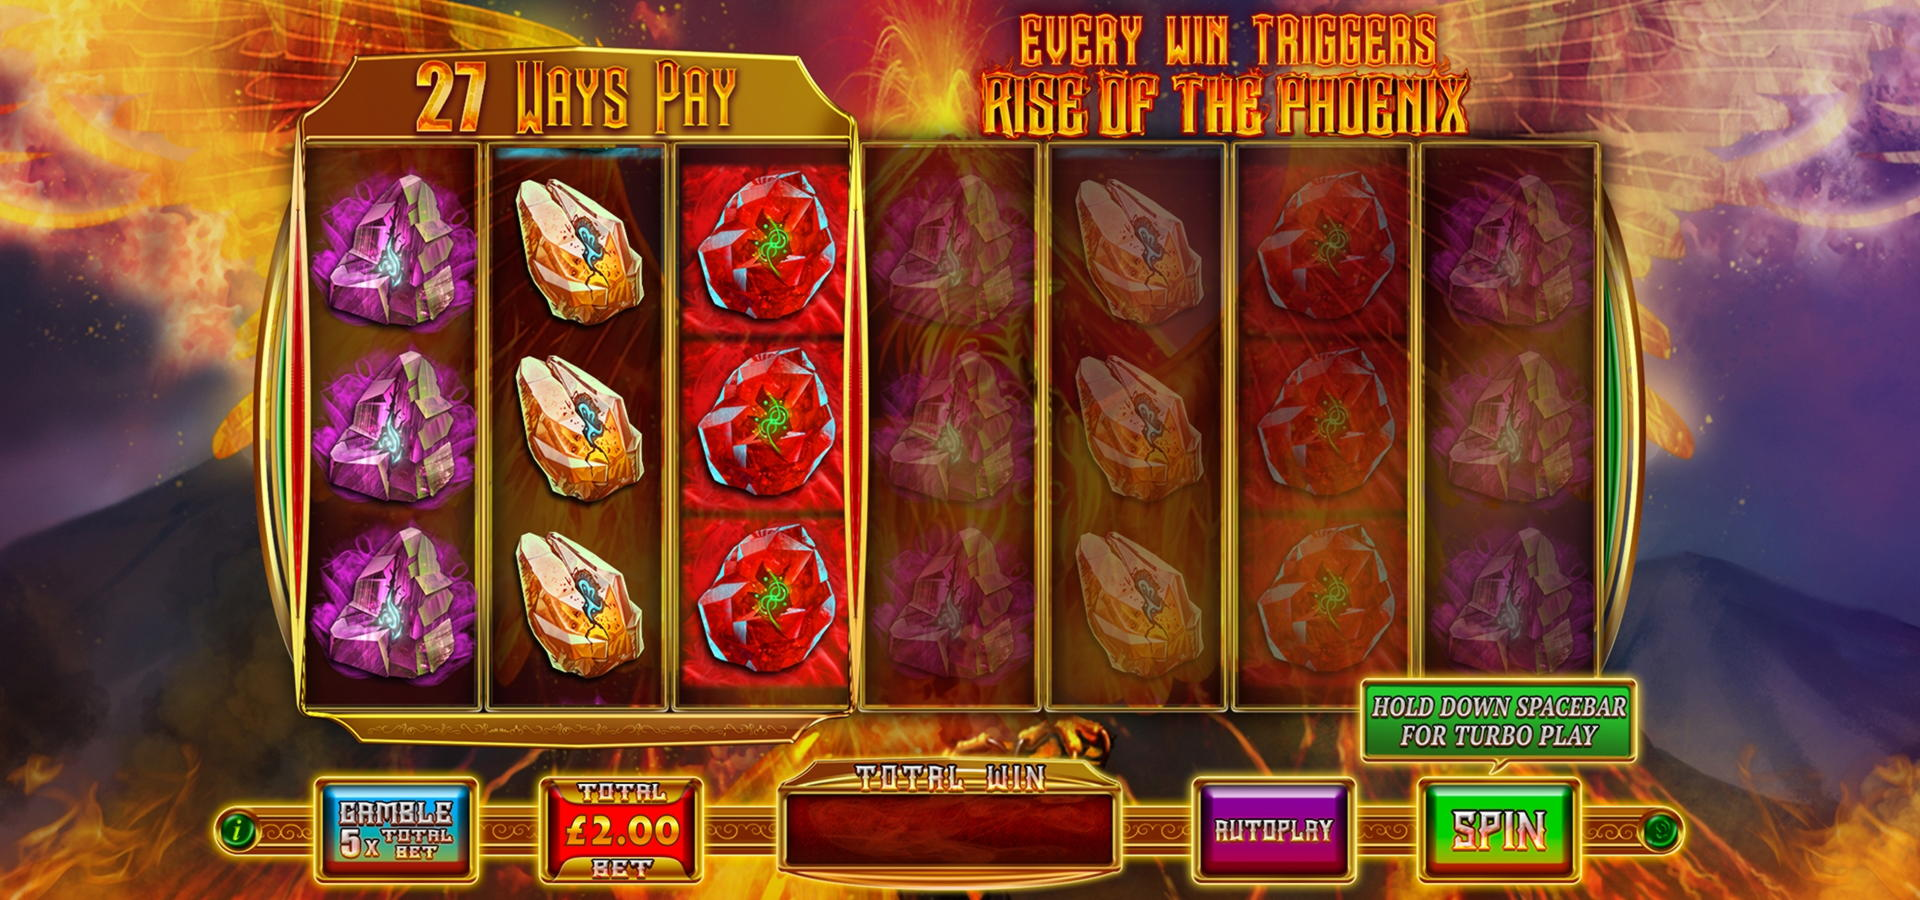 $695 casino chip at Slots City Online